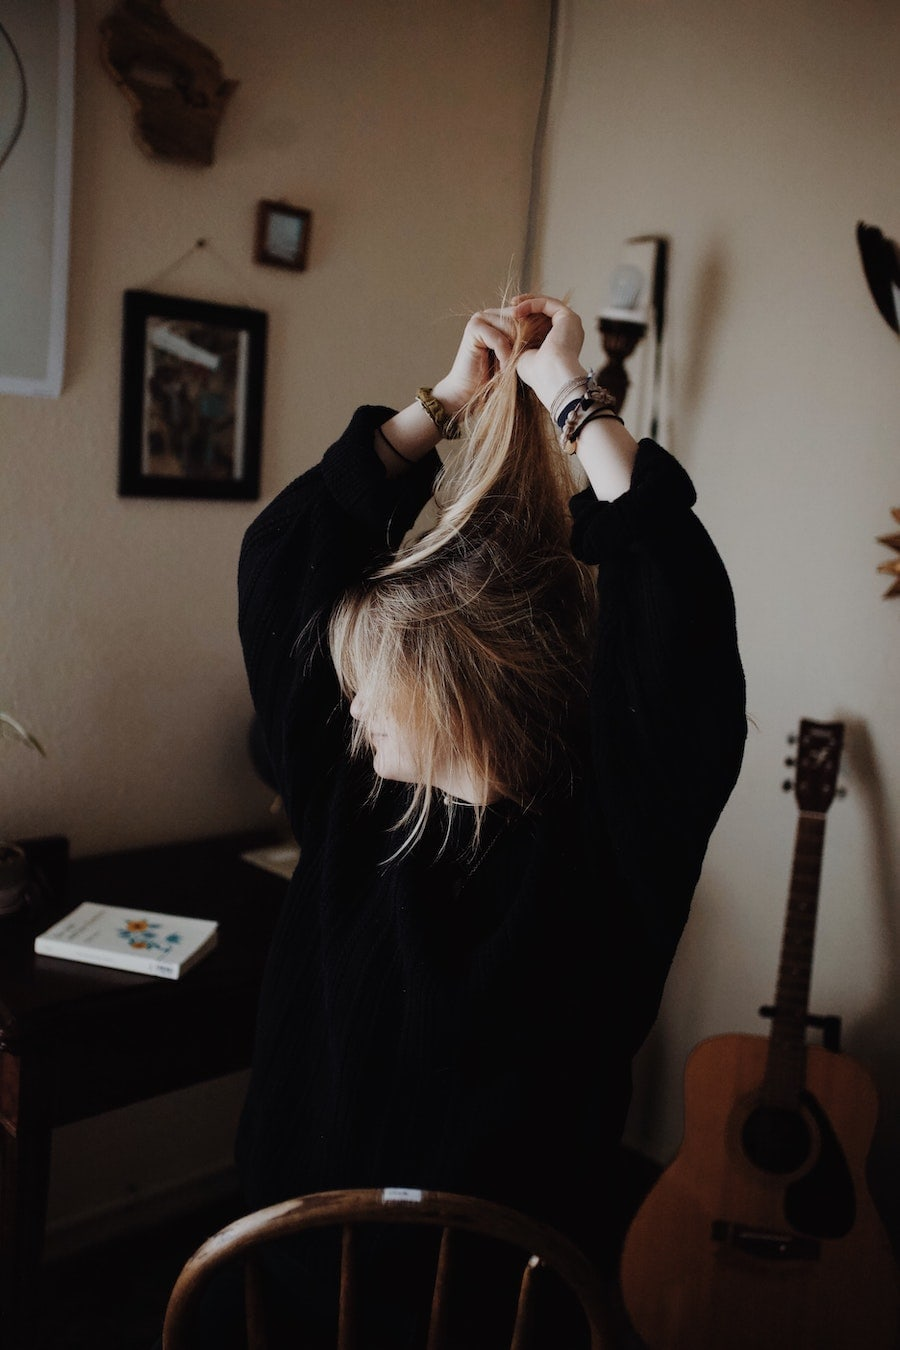 A woman tying back her hair with her guitar next to her.